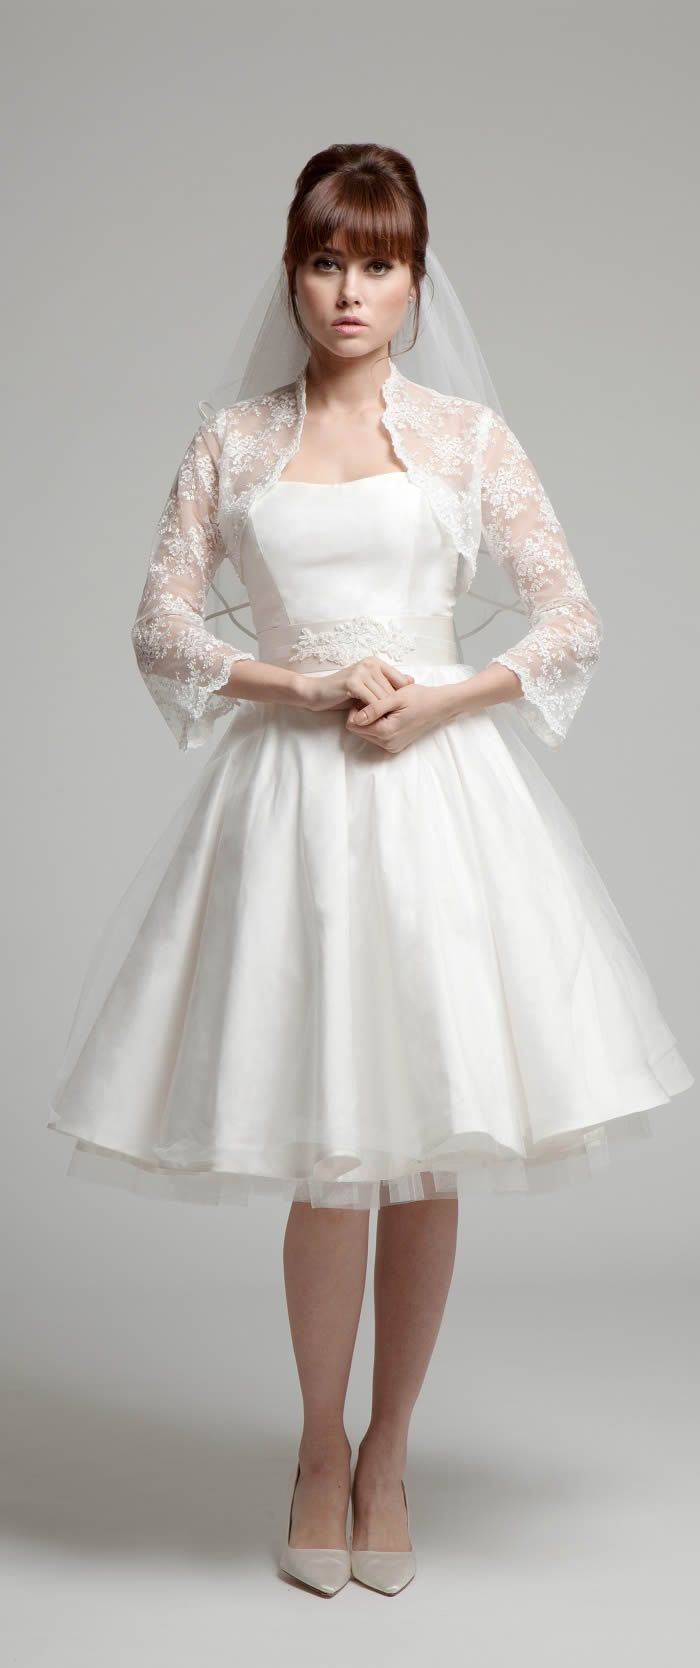 Fabulous Short Wedding Dress u Lace Bolero